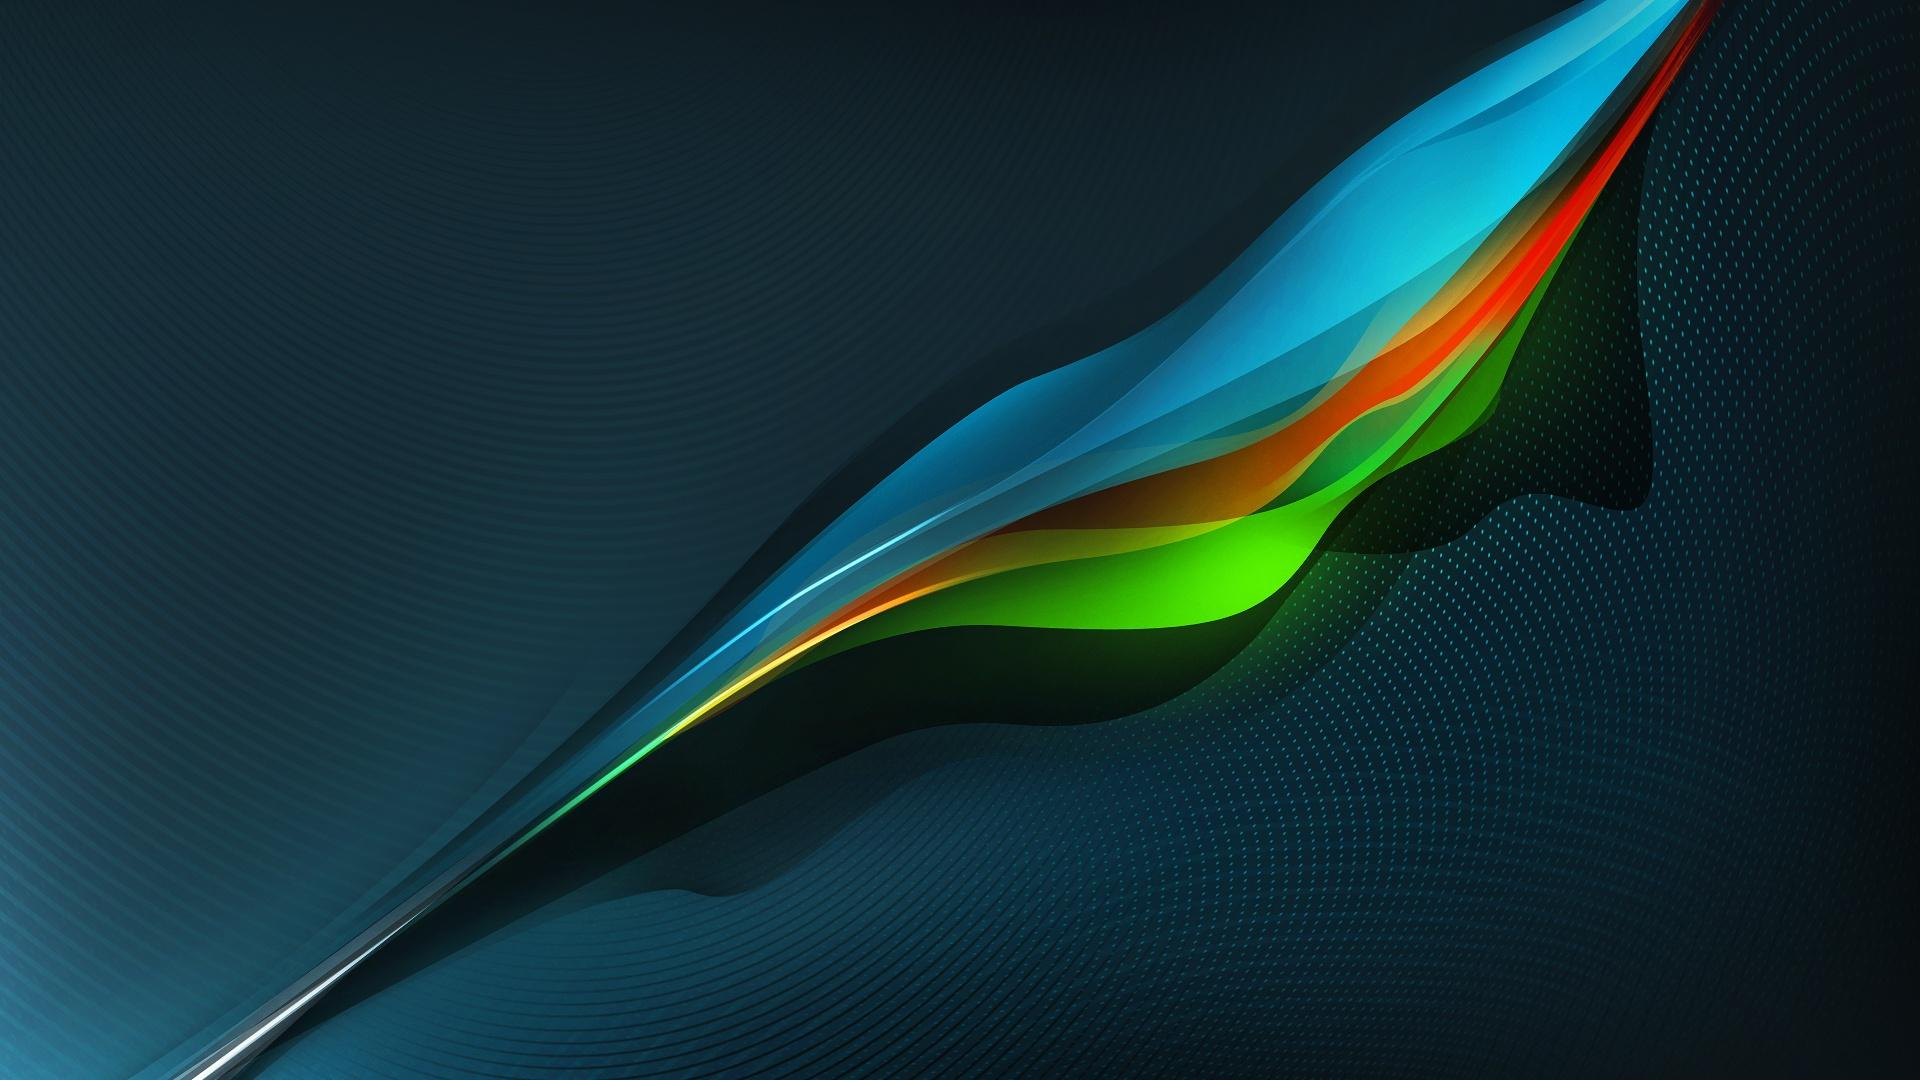 1920x1080 Abstract Wallpaper - WallpaperSafari